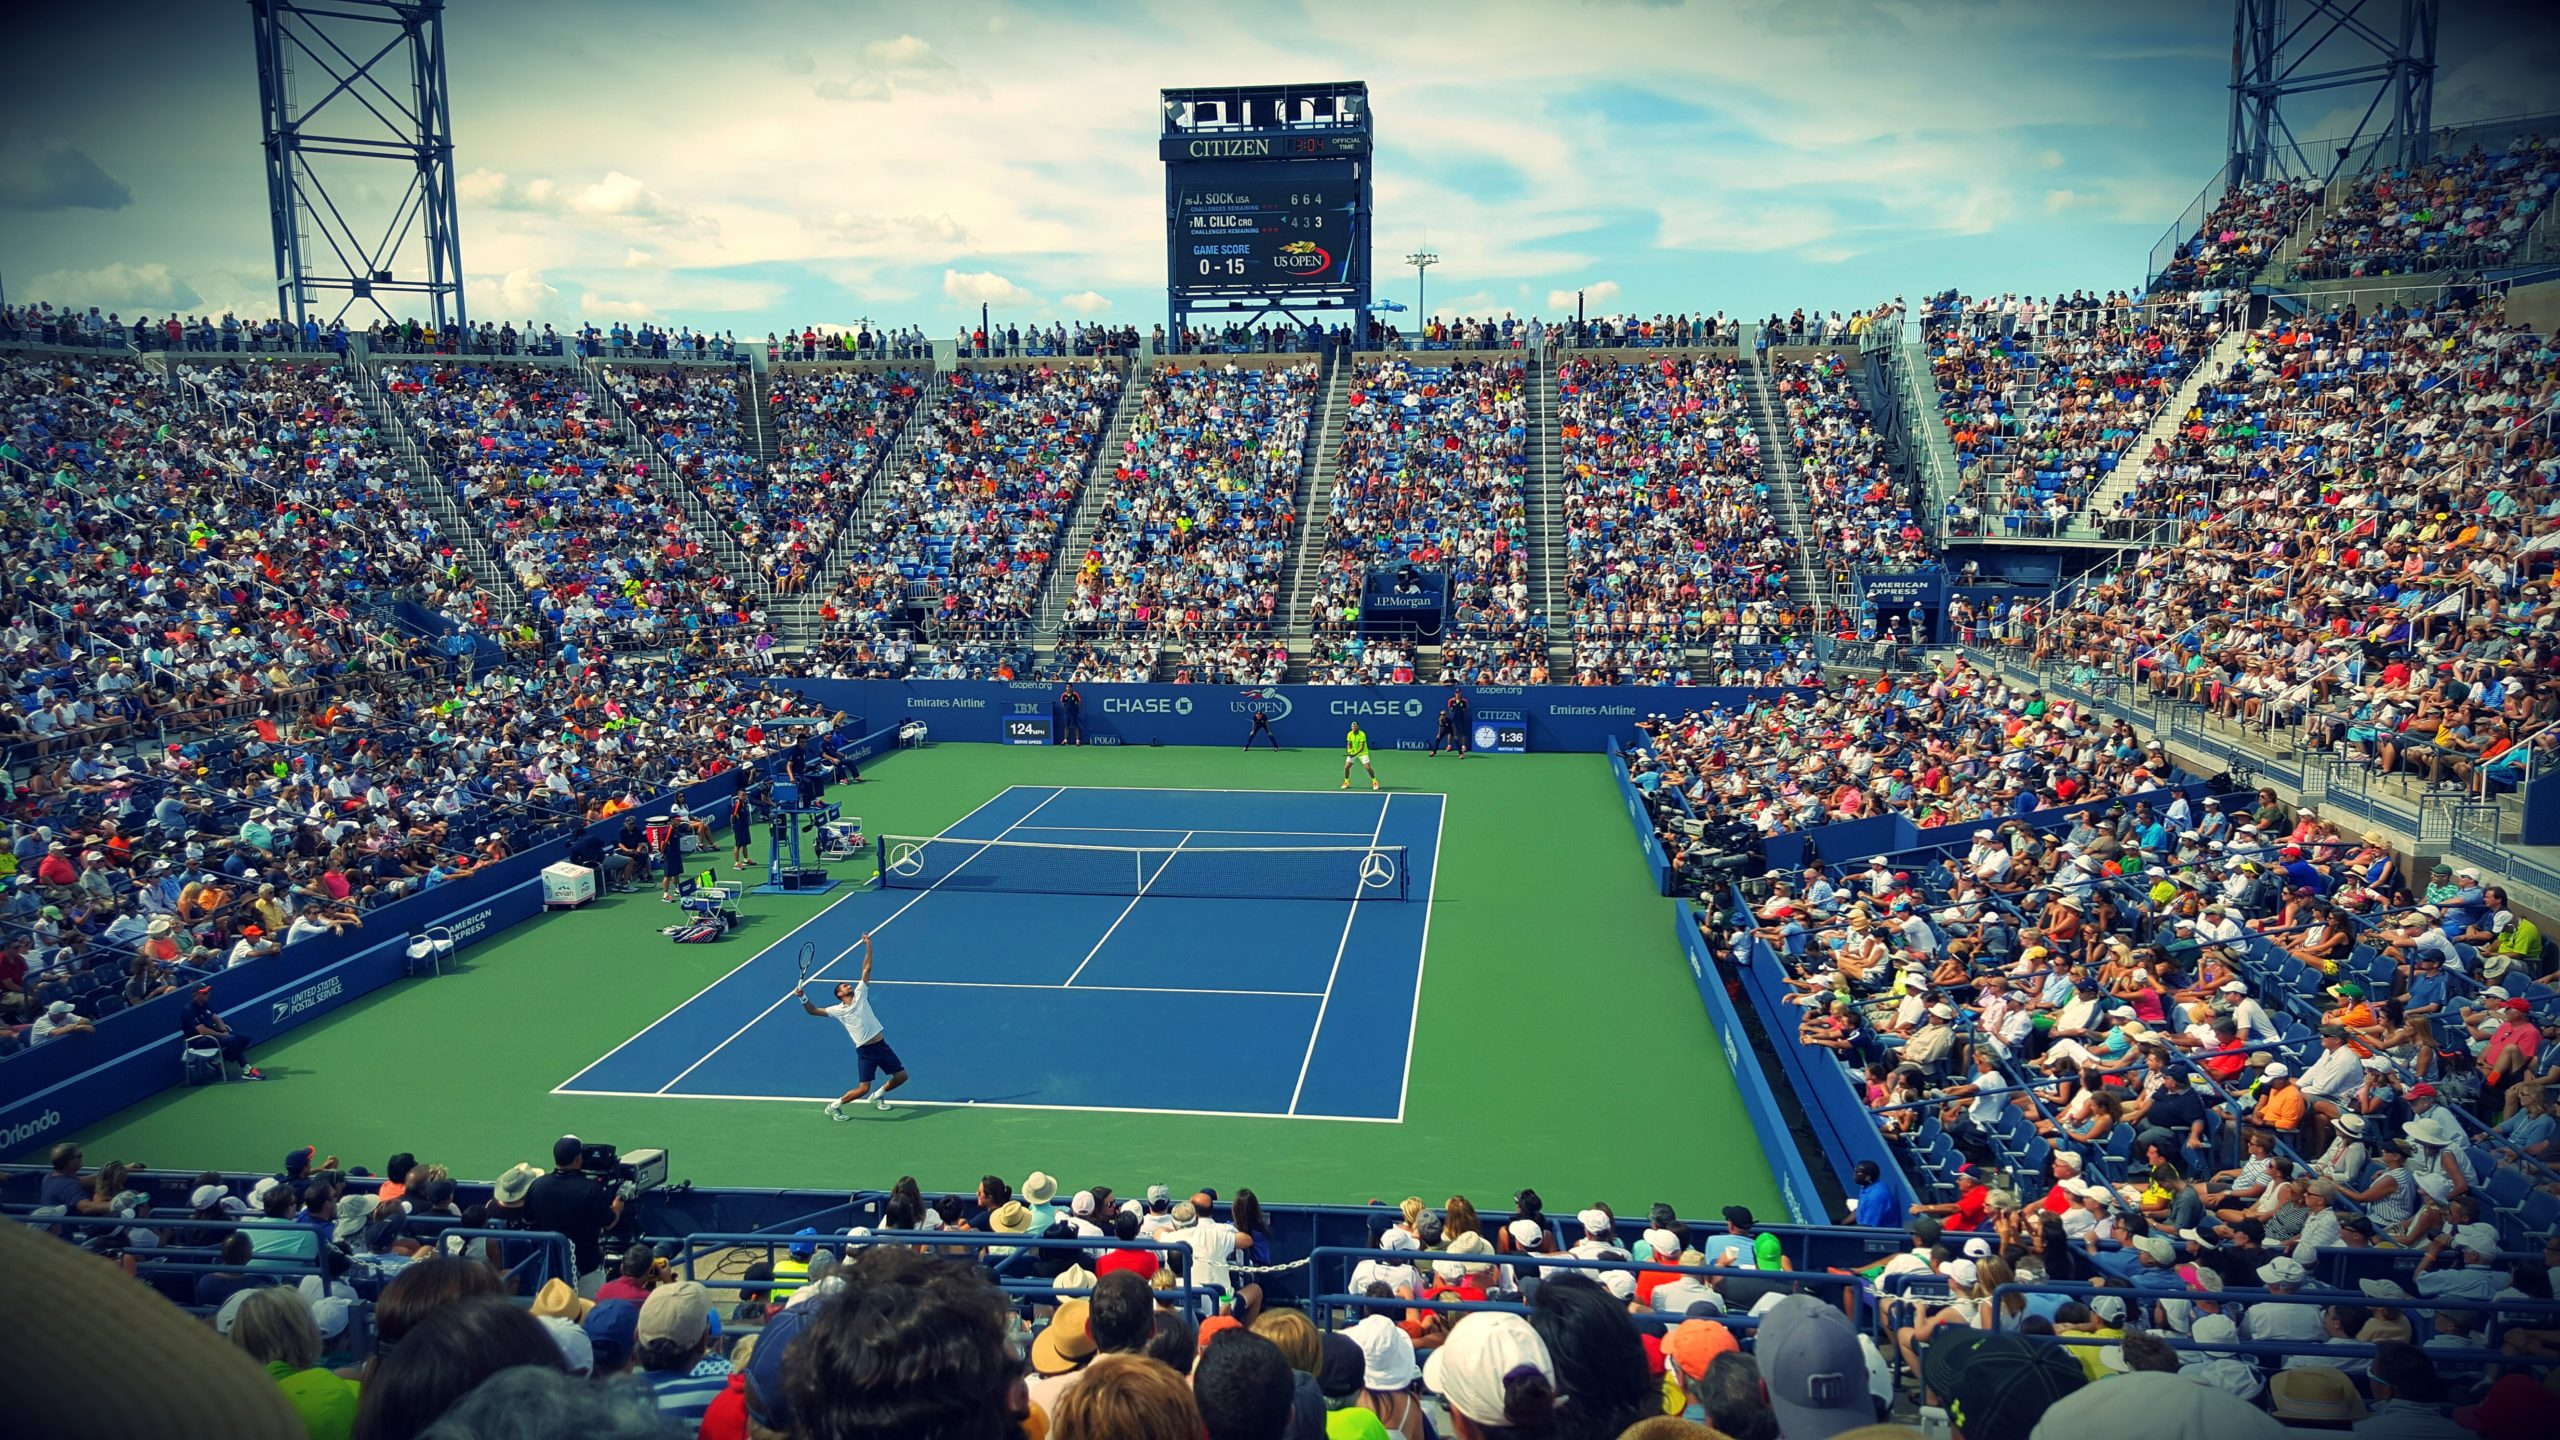 people-sitting-on-bench-watching-tennis-event-on-field-171568